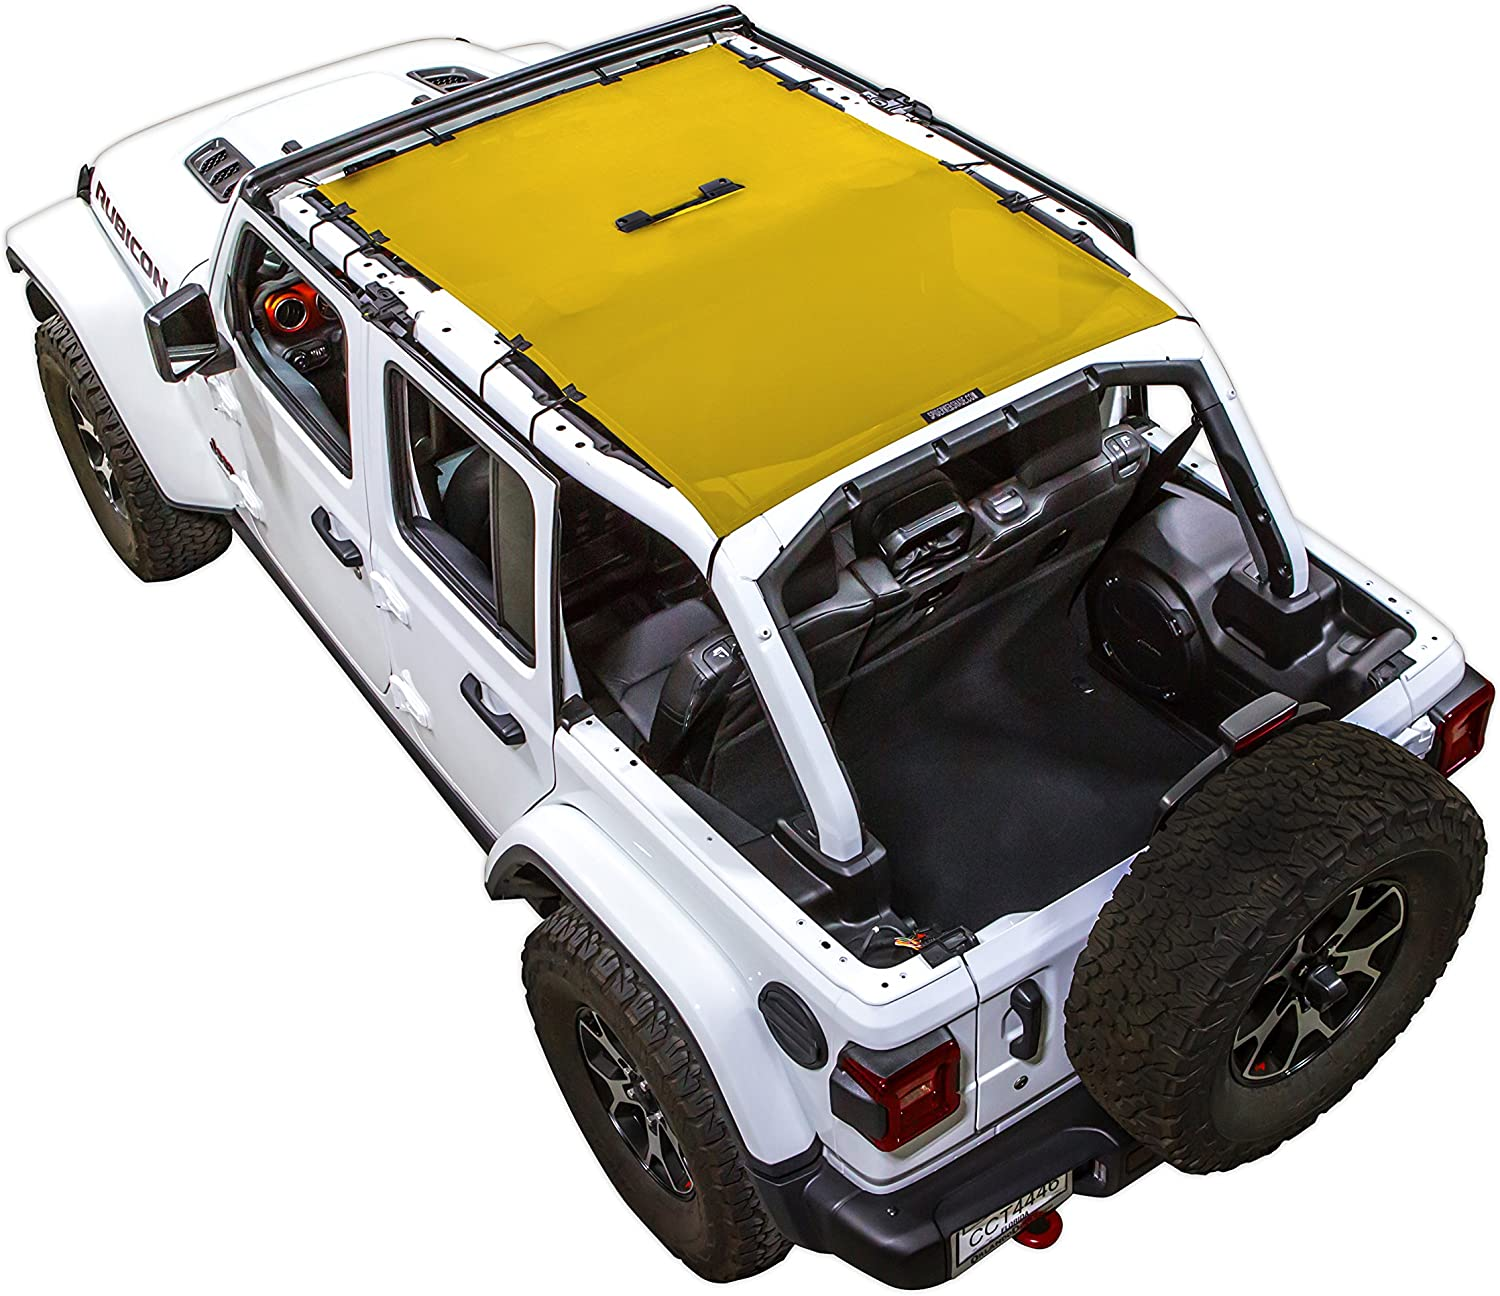 2018 - current SPIDERWEBSHADE Jeep Wrangler JL Mesh Shade Top Sunshade UV Protection Accessory USA Made with 5 Year Warranty for Your JL 4-Door in Yellow